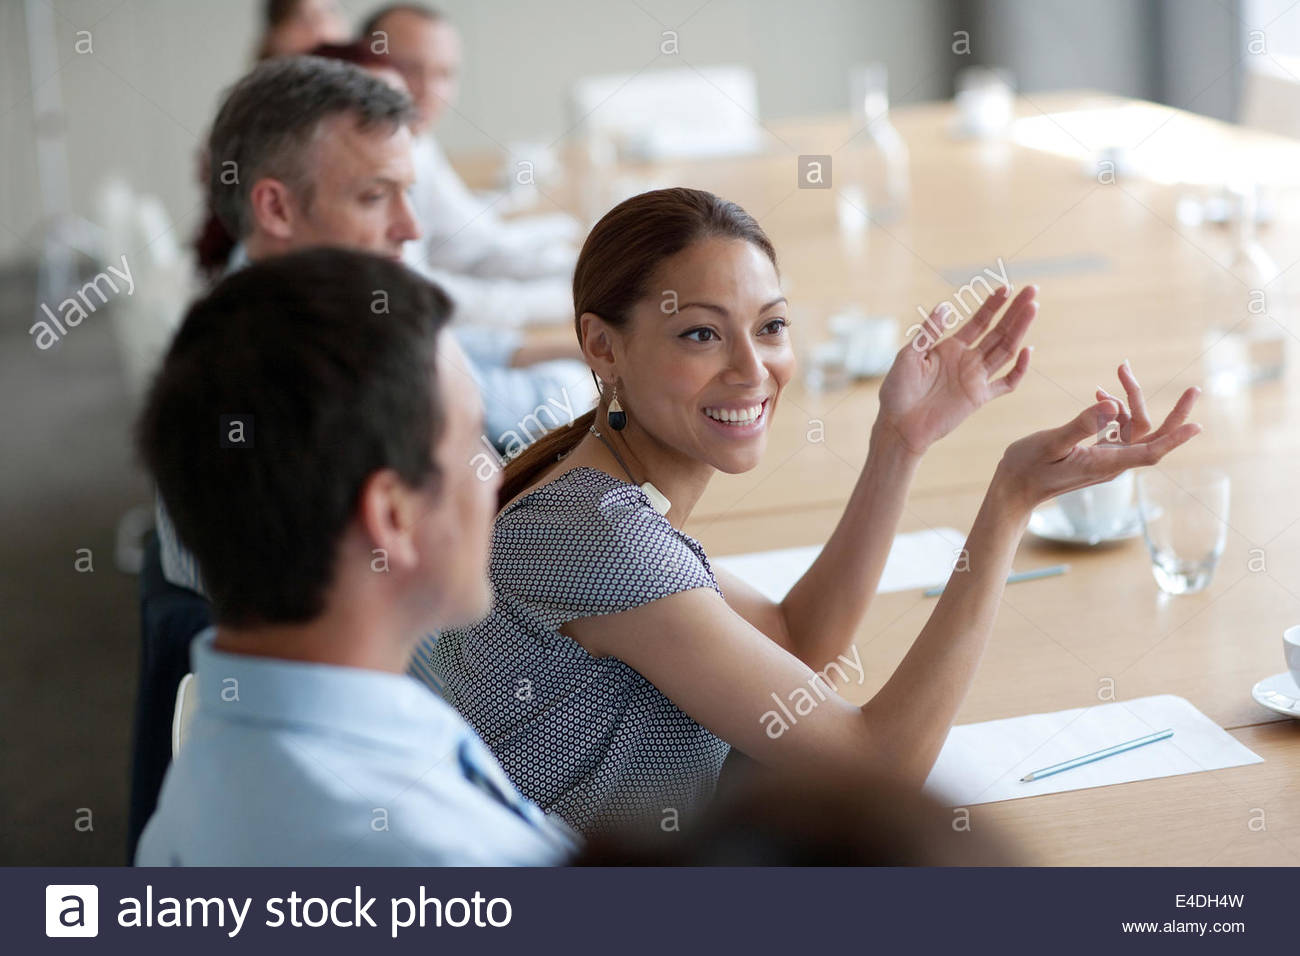 Smiling businesswoman gesturing in meeting in conference room - Stock Image